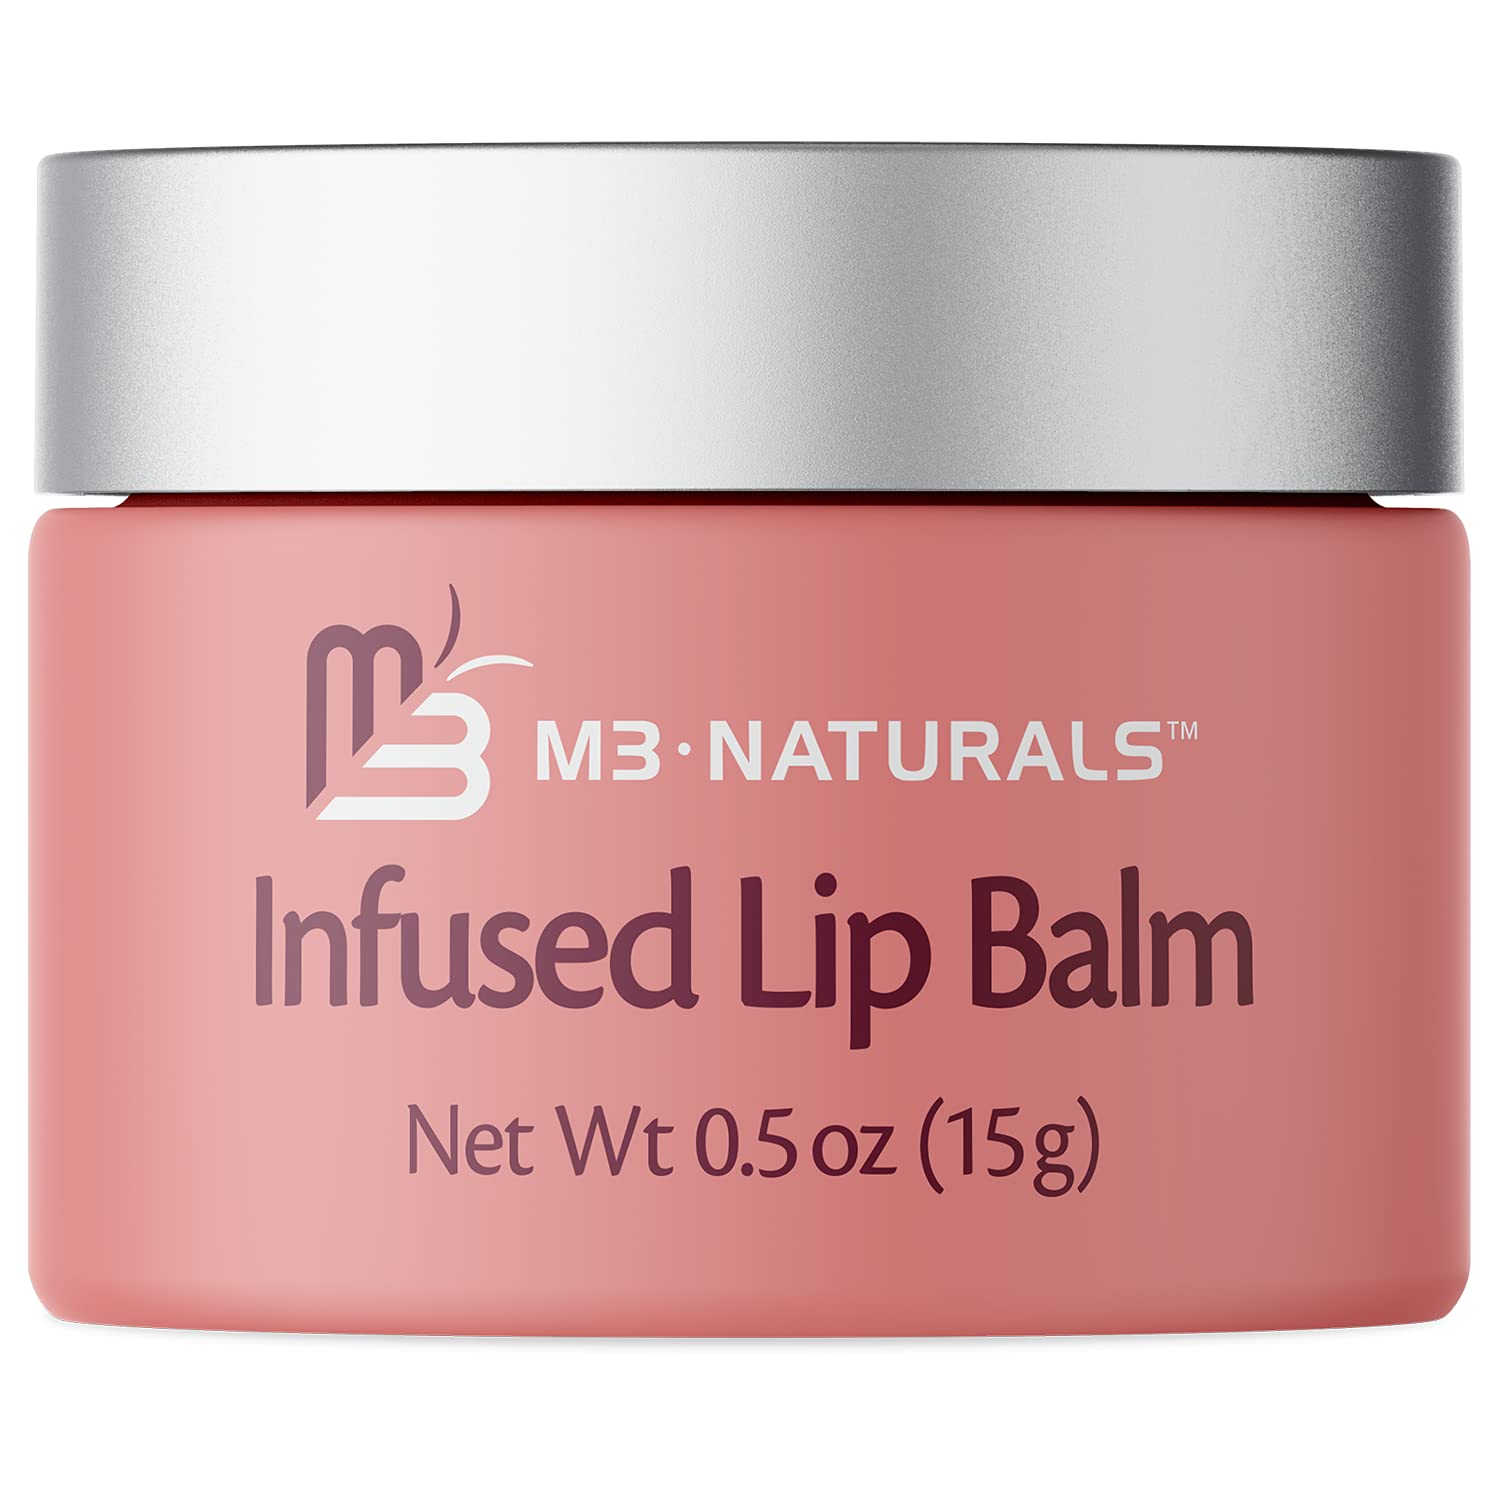 M3 Naturals Infused Lip Balm – Collagen and Stem Cell Infused – Instantly Hydrating Ingredients to Moisturize & Condition Lips – With Vitamin E + Shea Butter + Jojoba Oil + Castor Oil .5 oz